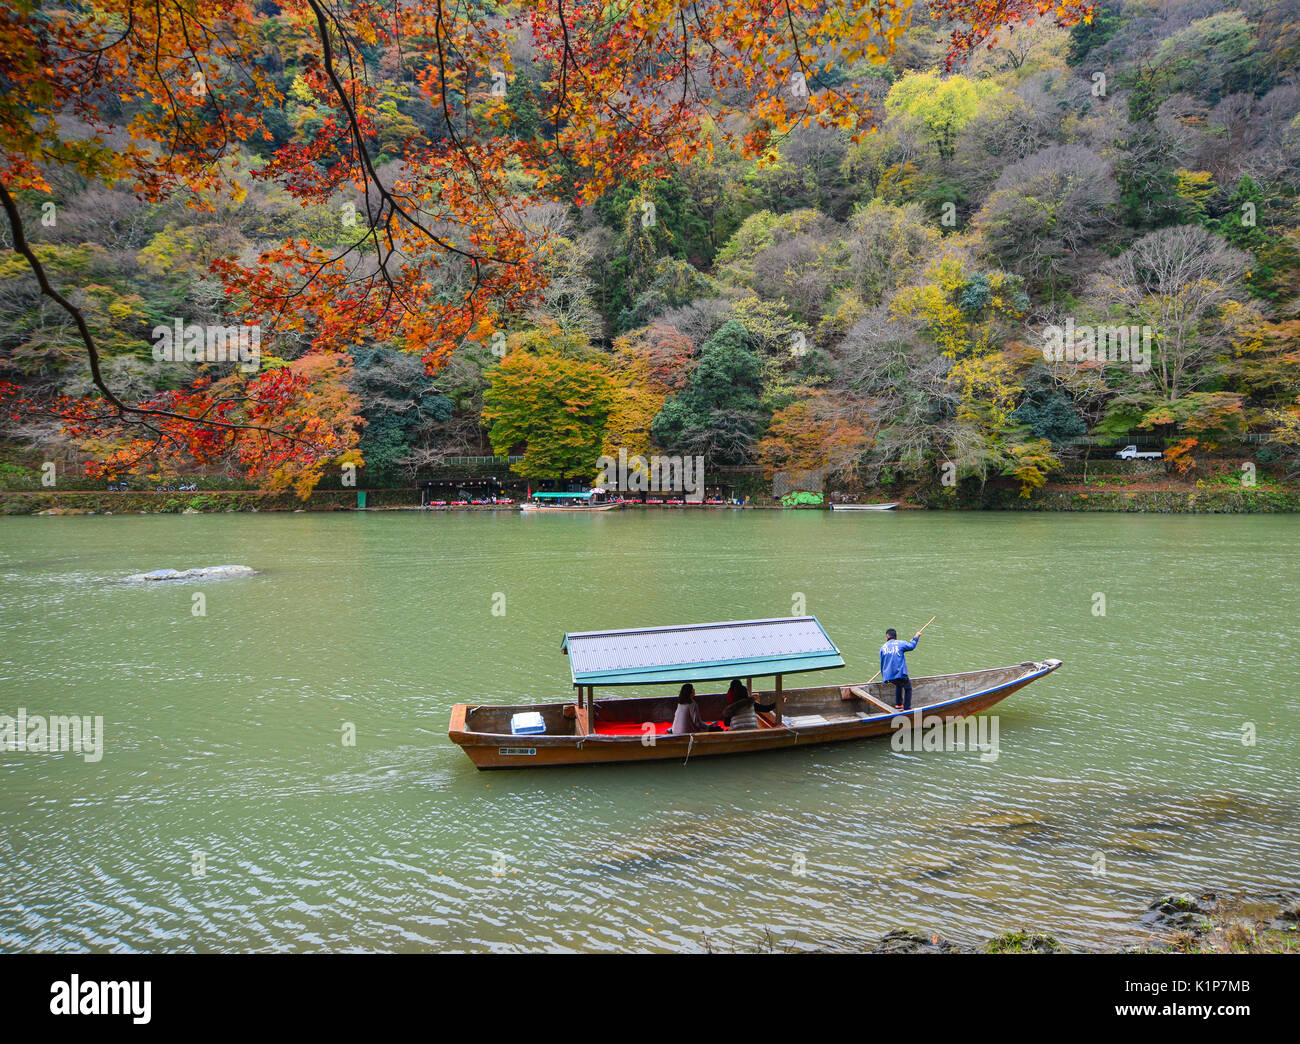 Kyoto, Japan - Nov 28, 2016. Boatman punting the boat for tourists to enjoy the autumn view with maple trees along the bank of Hozu river in Arashiyam - Stock Image